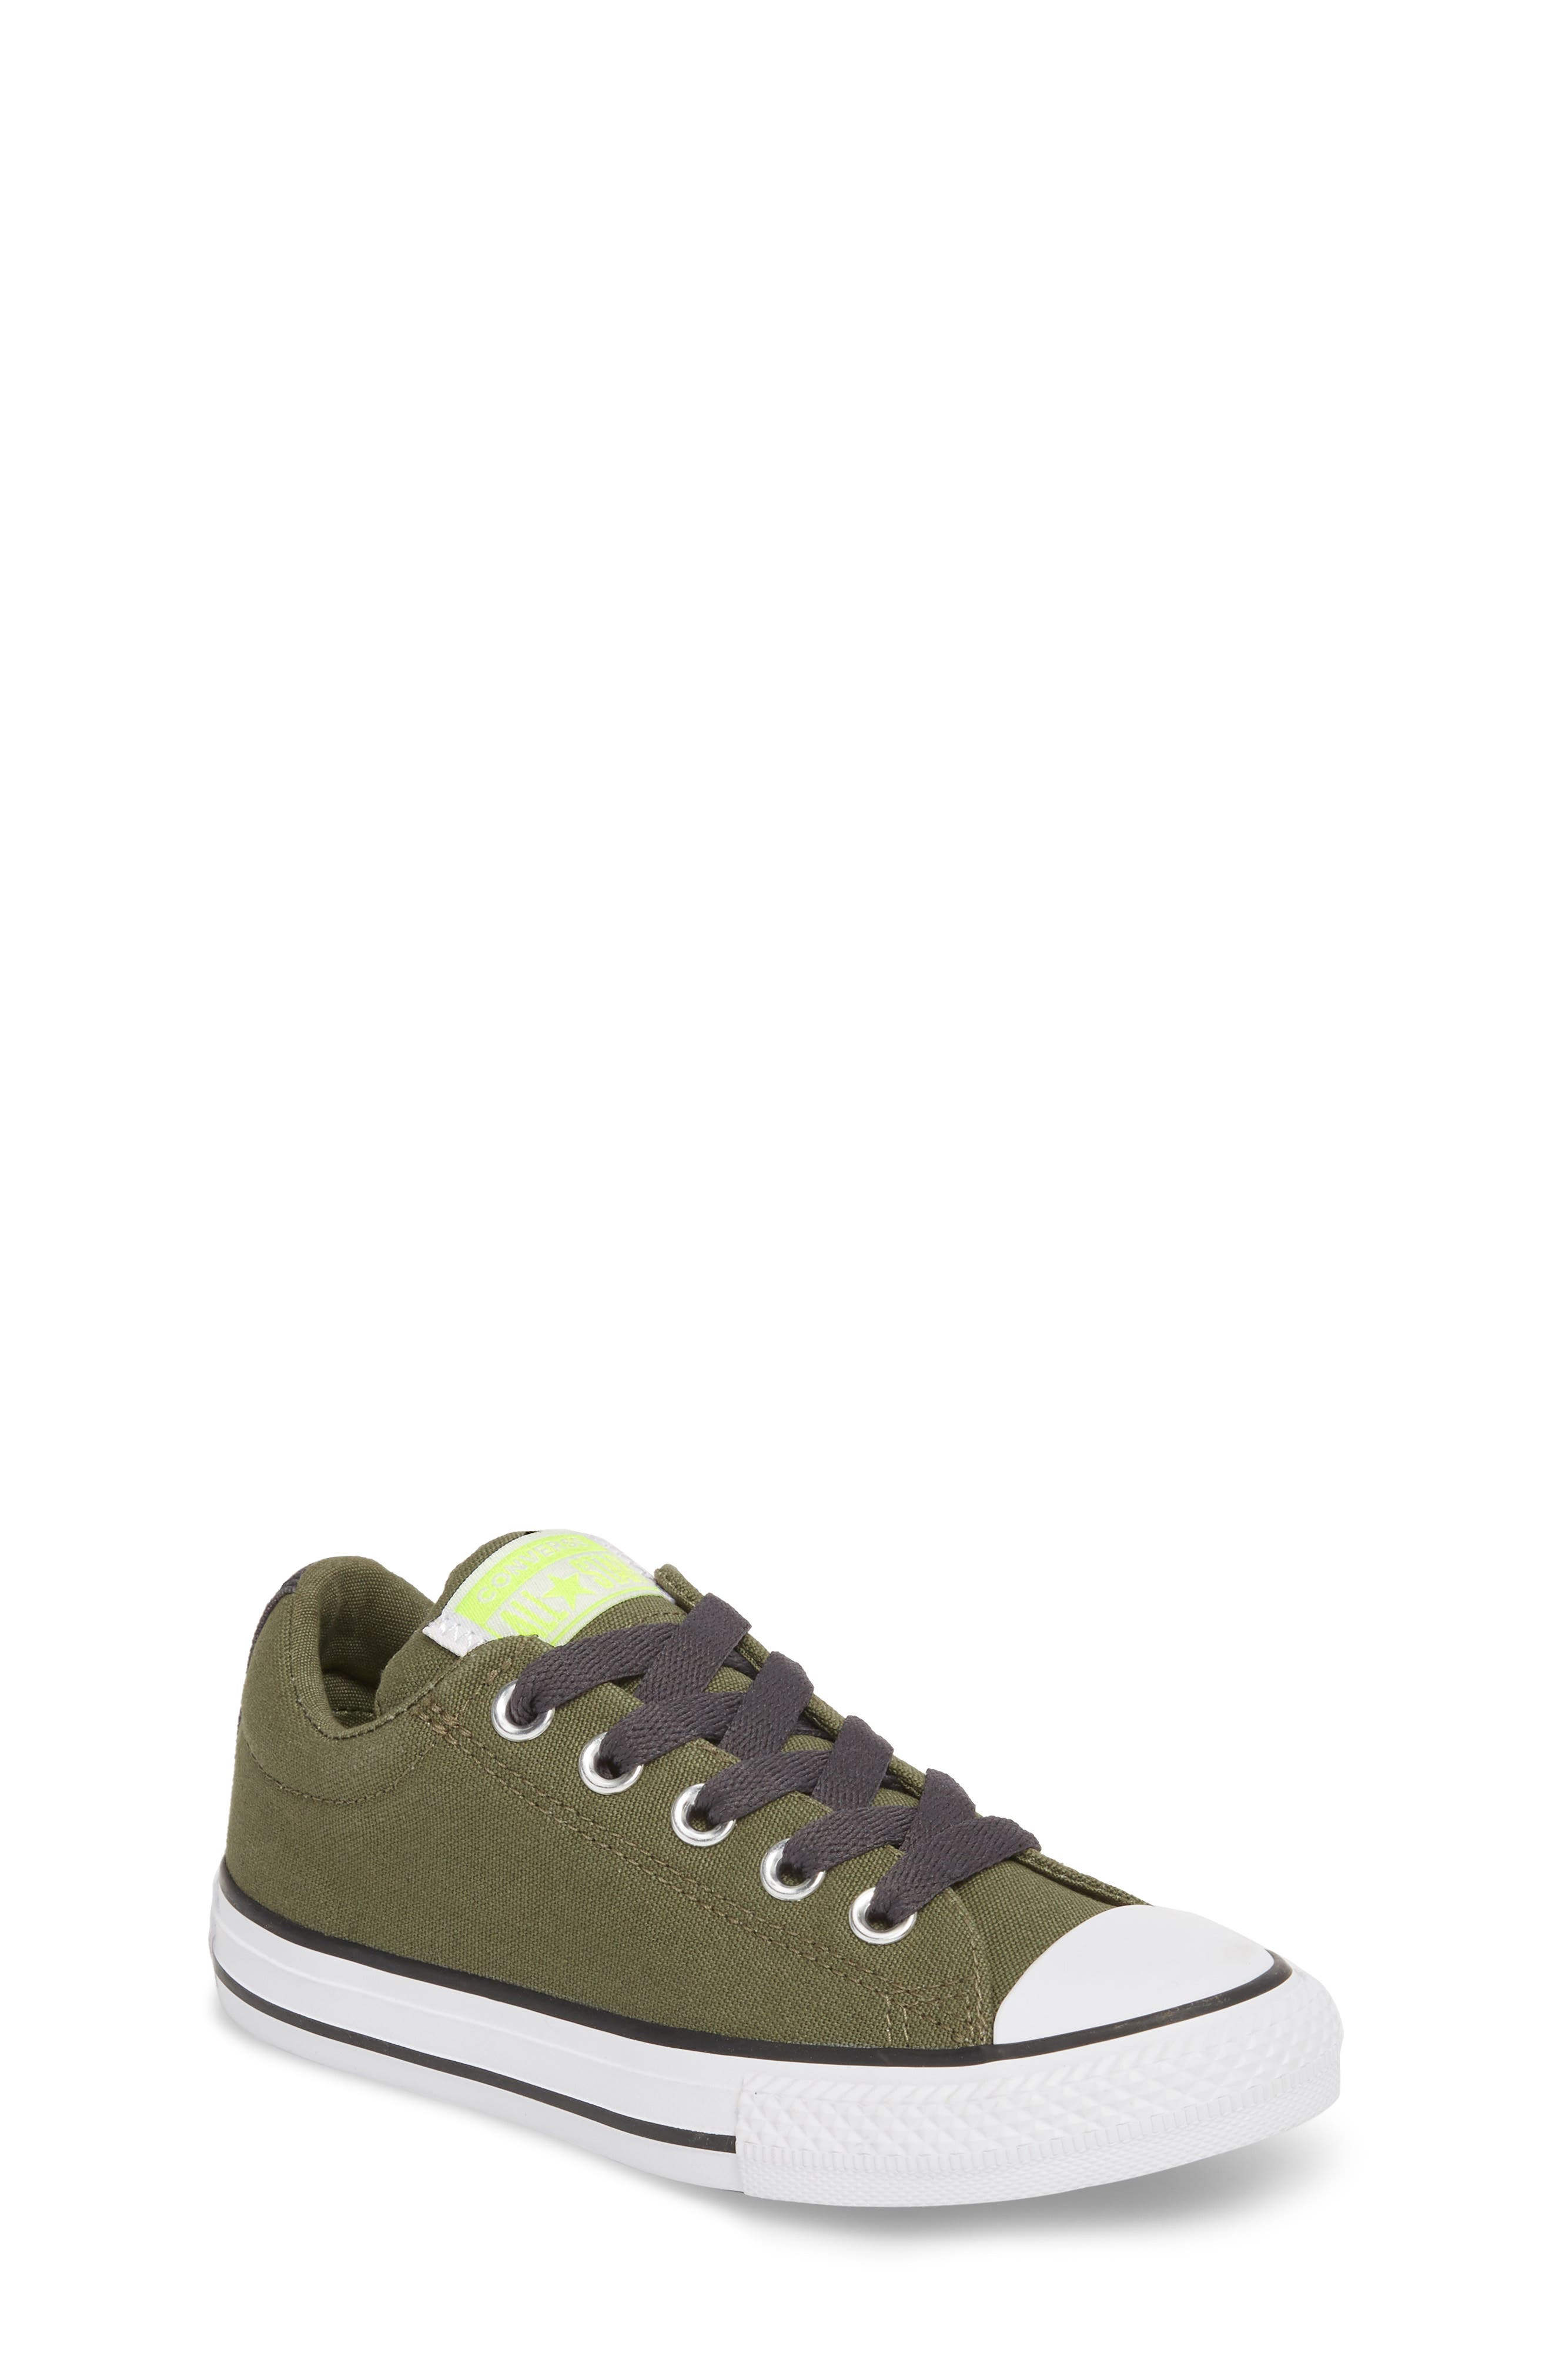 Chuck Taylor<sup>®</sup> All Star<sup>®</sup> Street Slip Low Top Sneaker,                             Main thumbnail 1, color,                             322